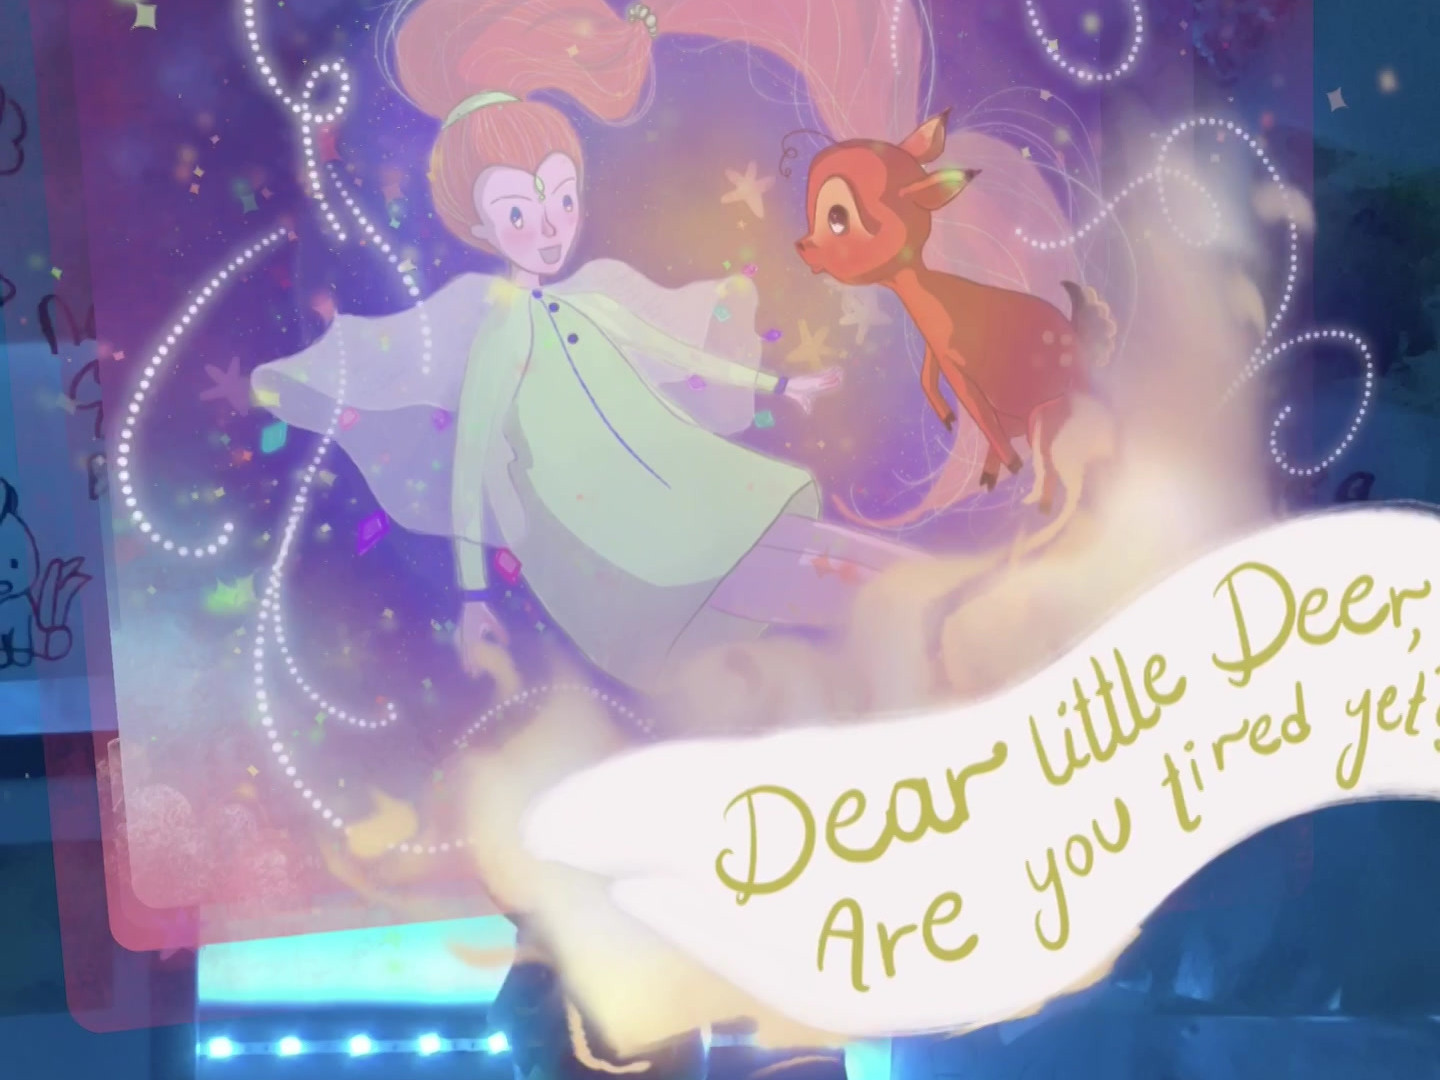 Dear Little Deer, Are you Tired Yet_ (20